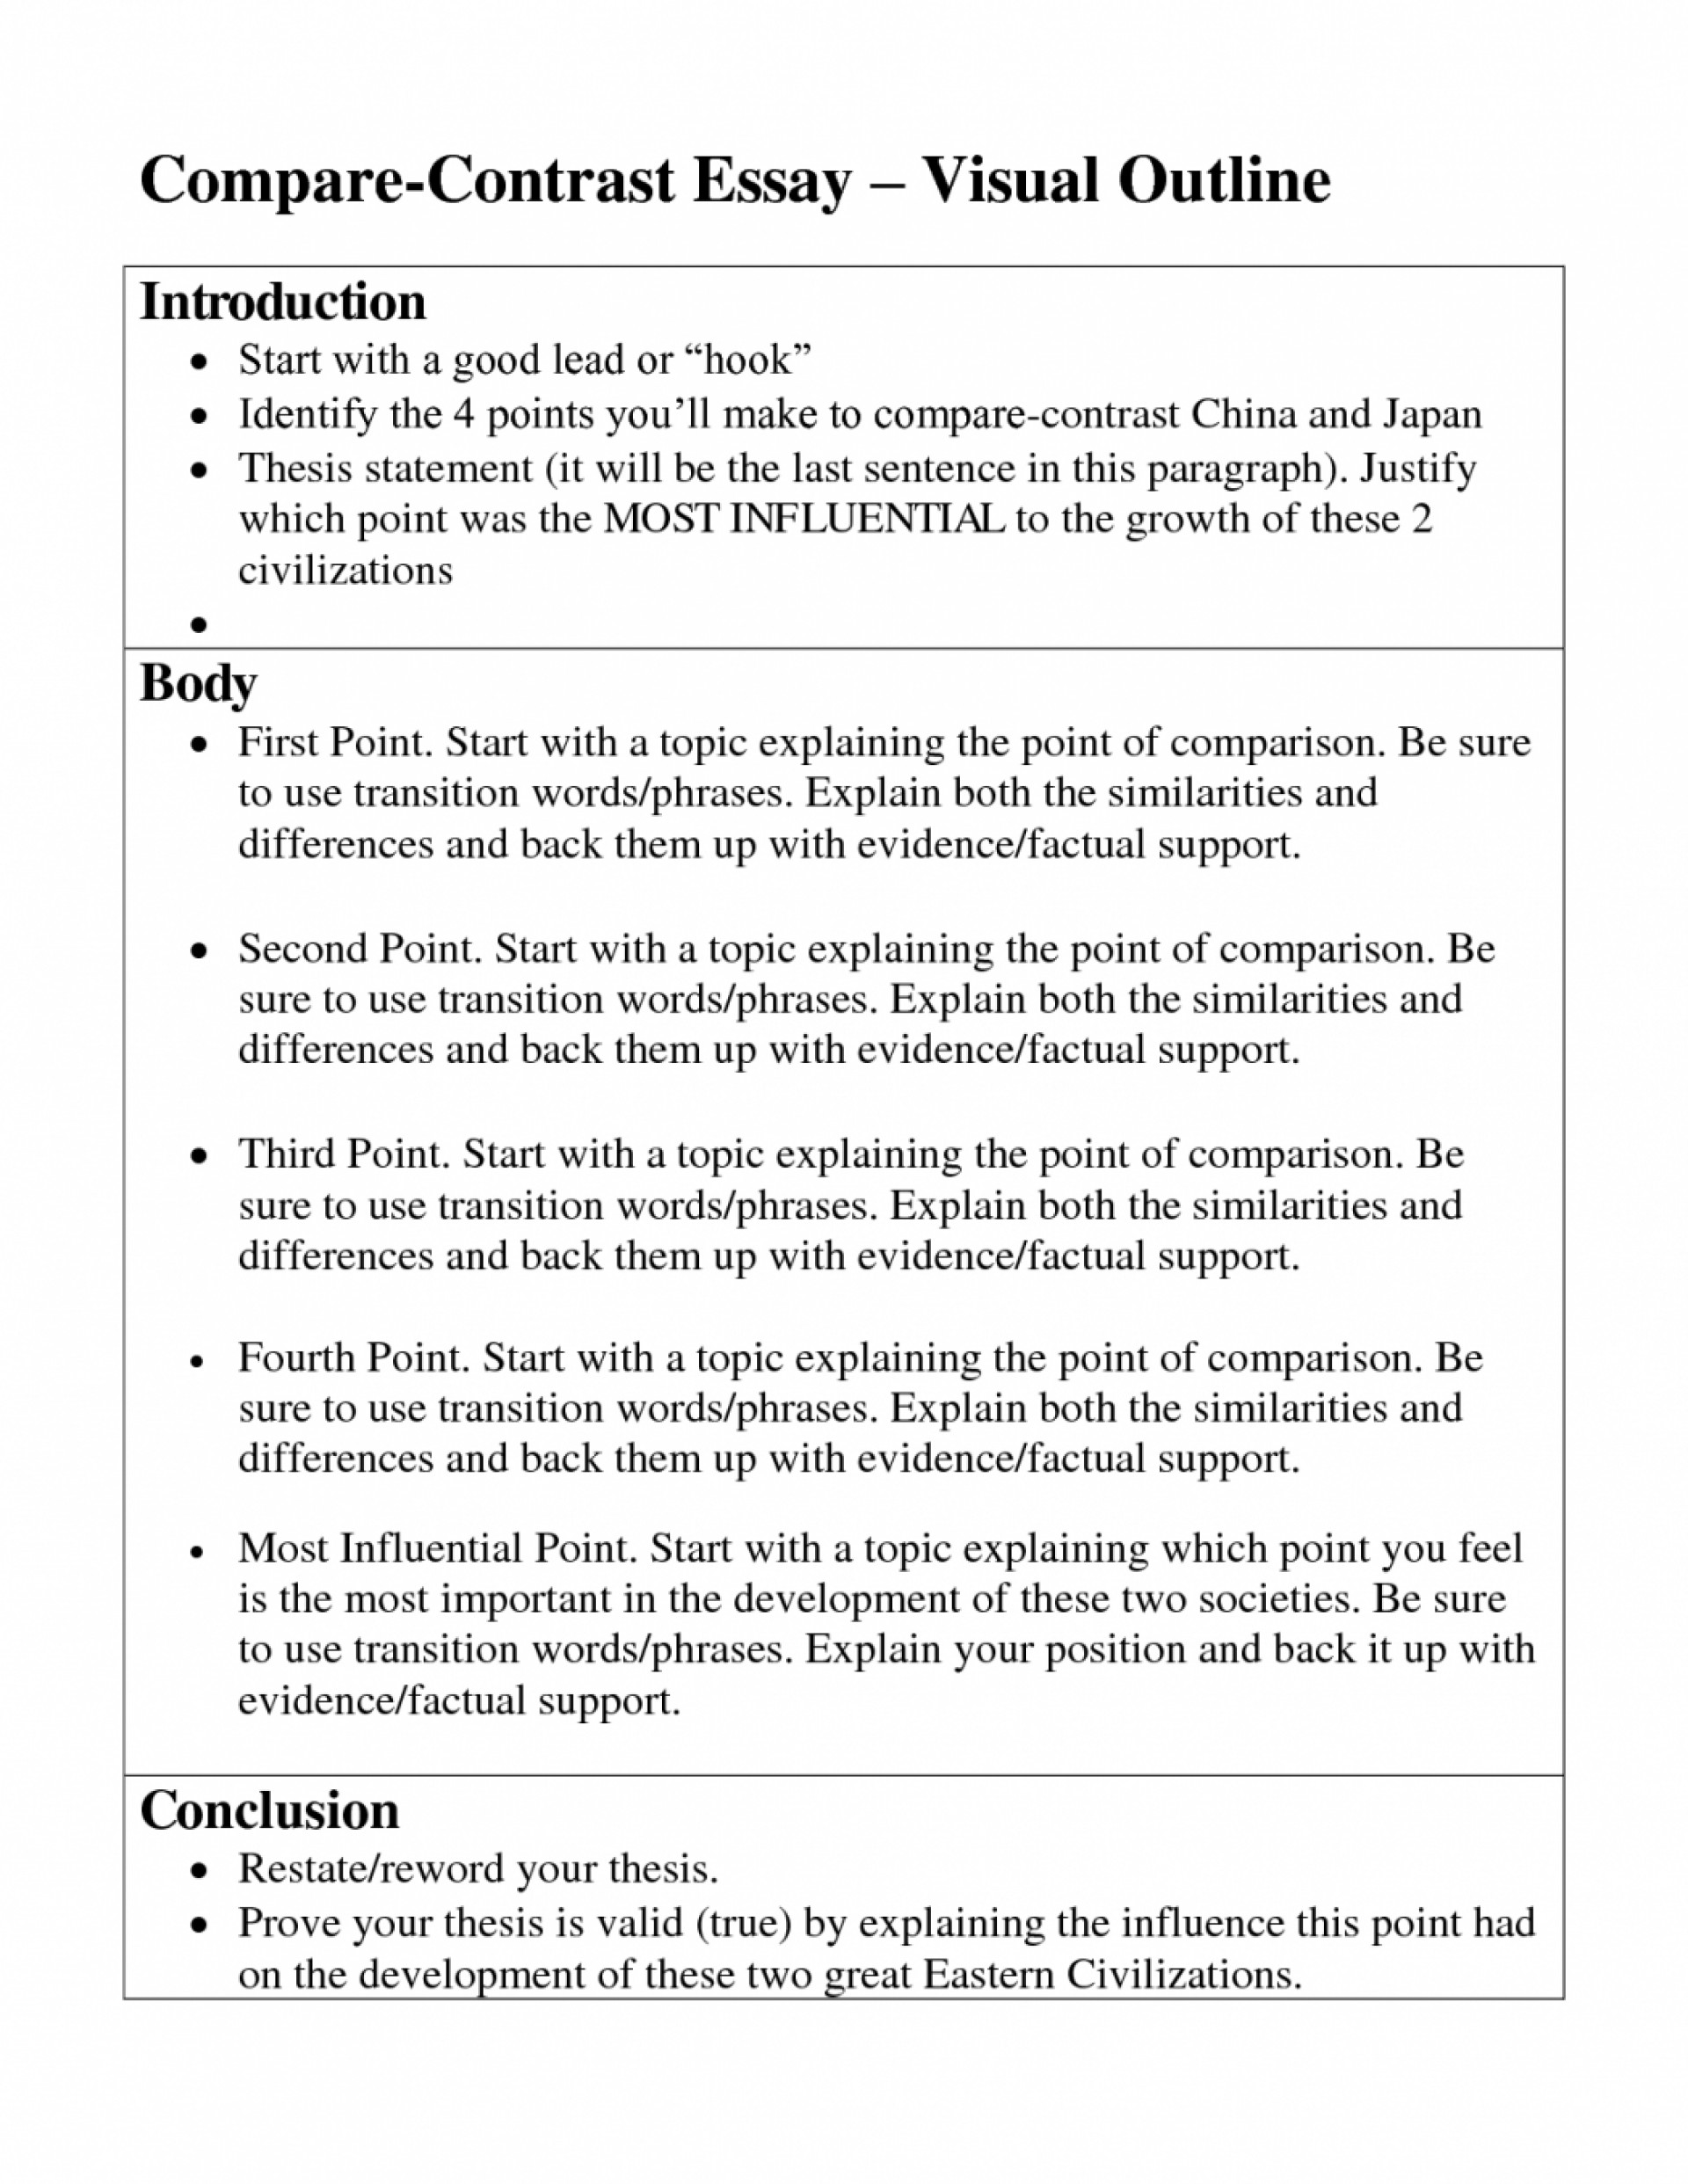 004 Compare And Contrast Essay Topics For High School Students English College Pdf Research Paper 1048x1356 Comparison Staggering Esl Examples Middle 1920